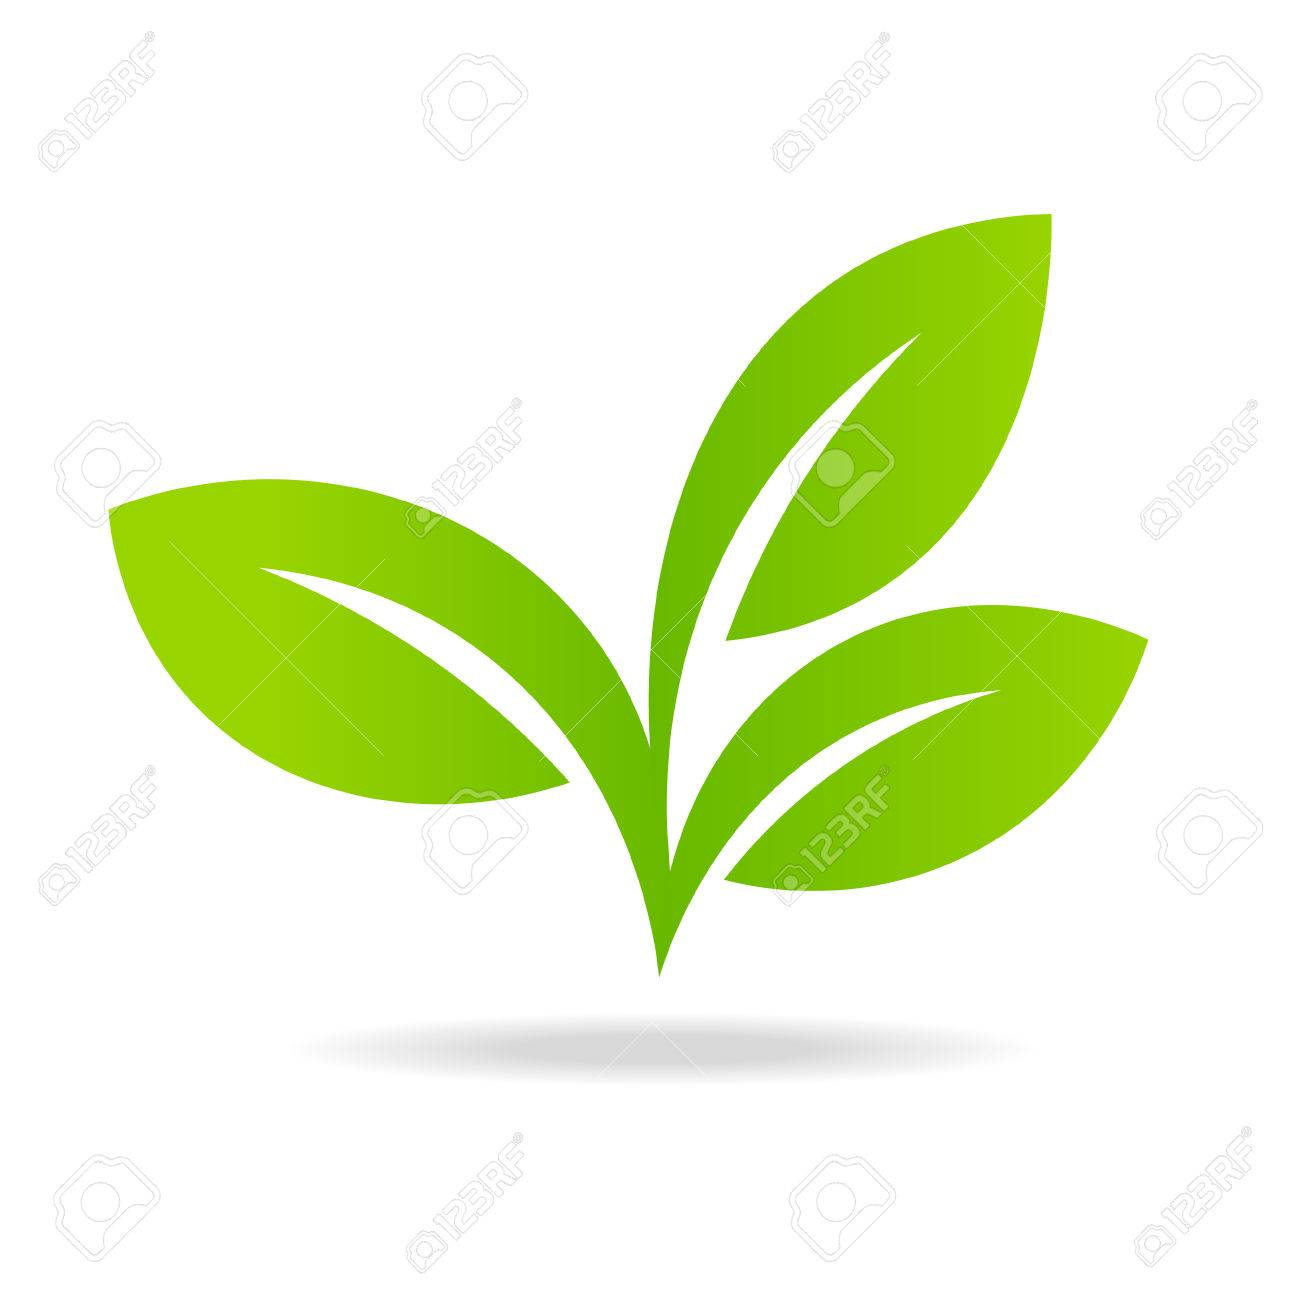 Icon of green leaf ecology nature element - 60555581